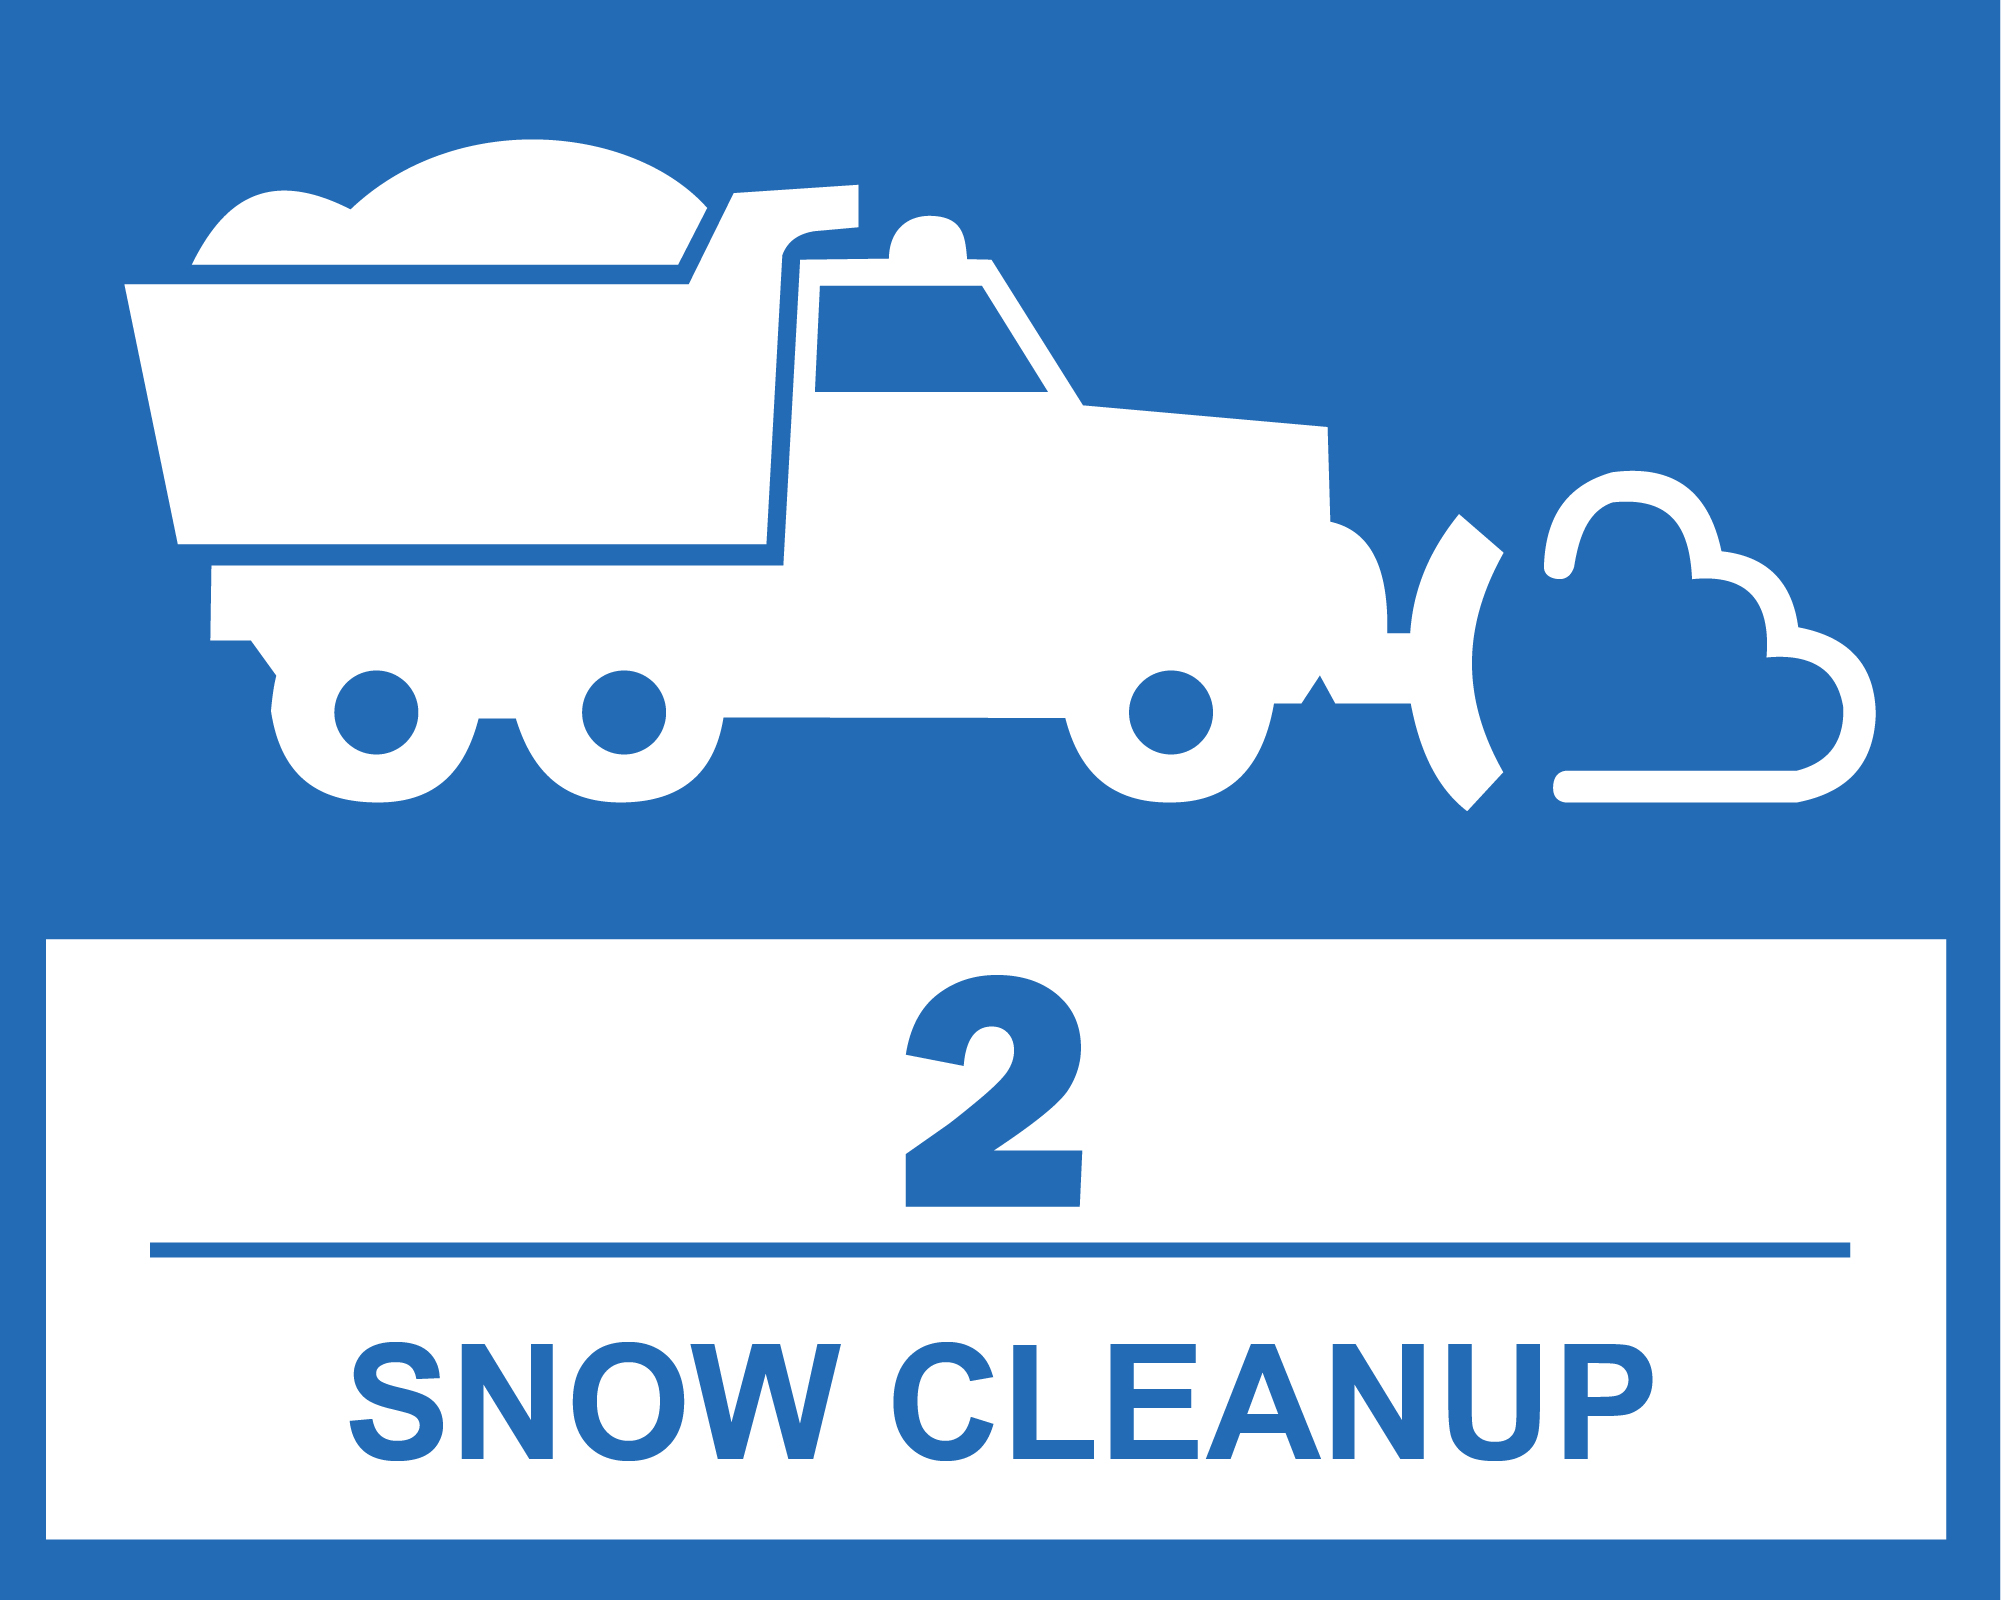 2 - Snow Cleanup